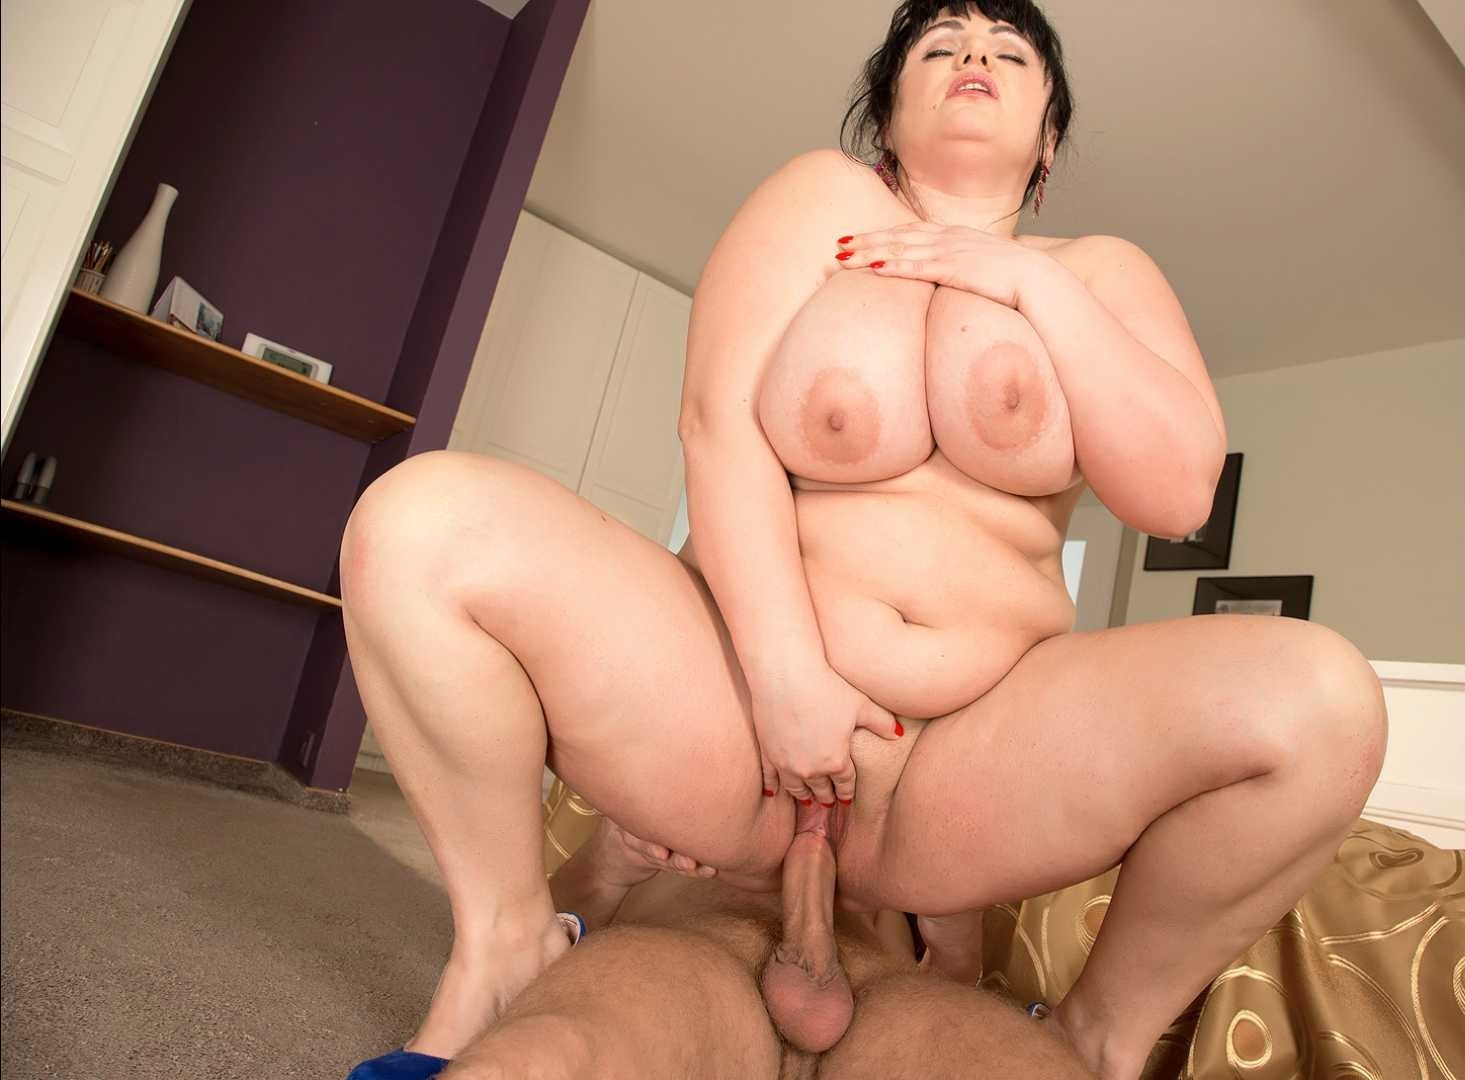 Fat Girl Boob Milk Free Pics Watch Download And Enjoy Fat